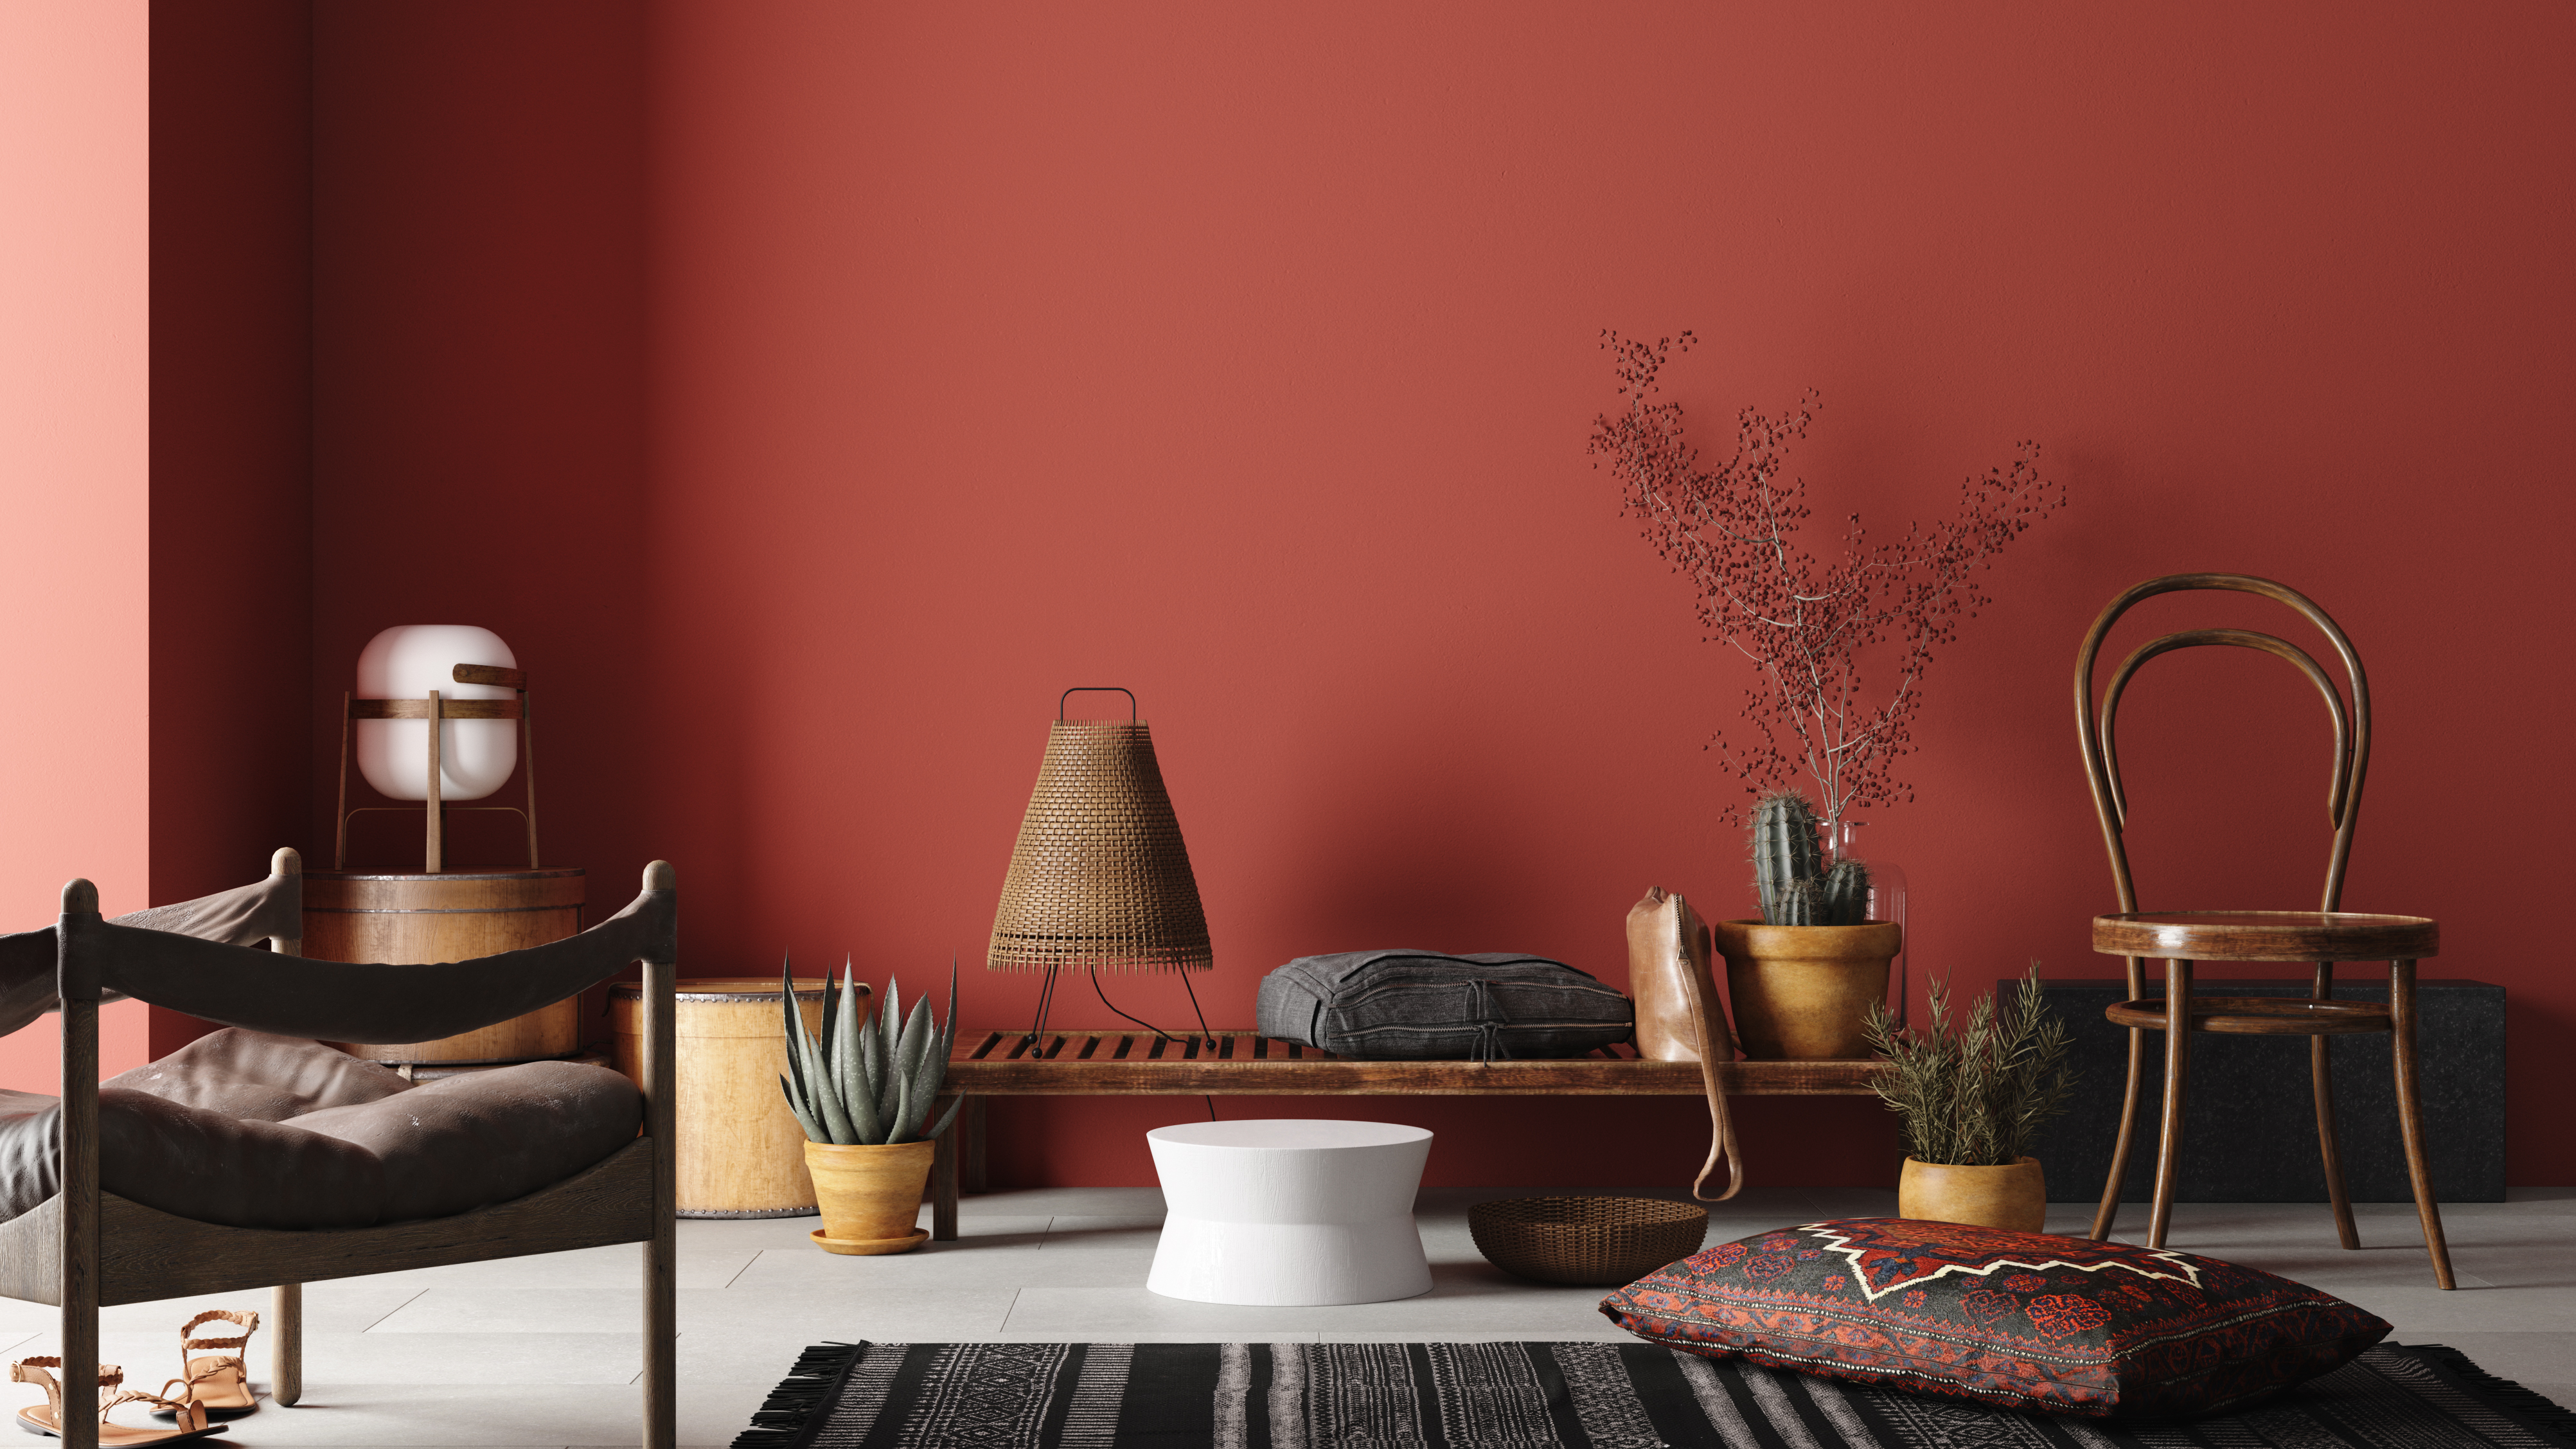 Rustic Home interior mockup with bench,chairs and decor in red room, 3d rendering